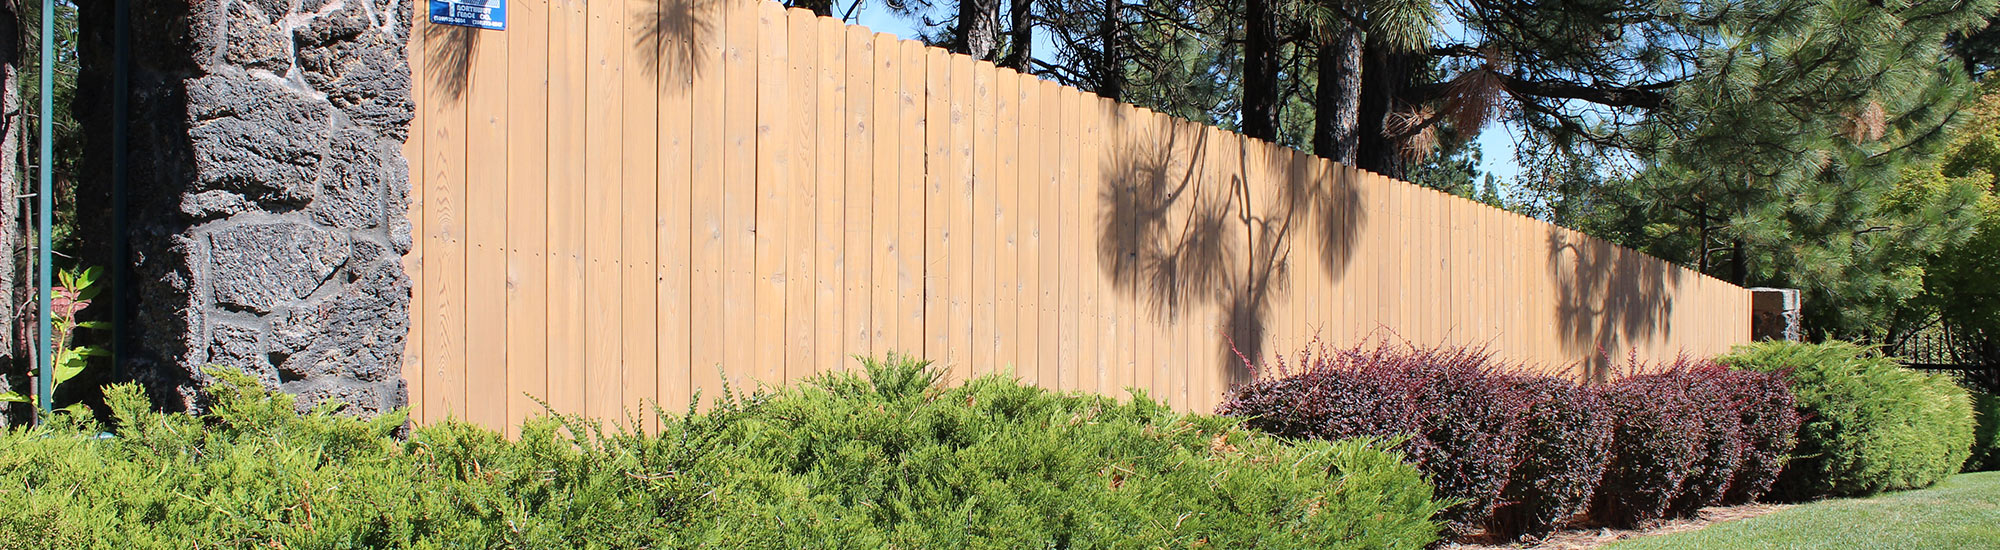 Wooden Fencing - Residential